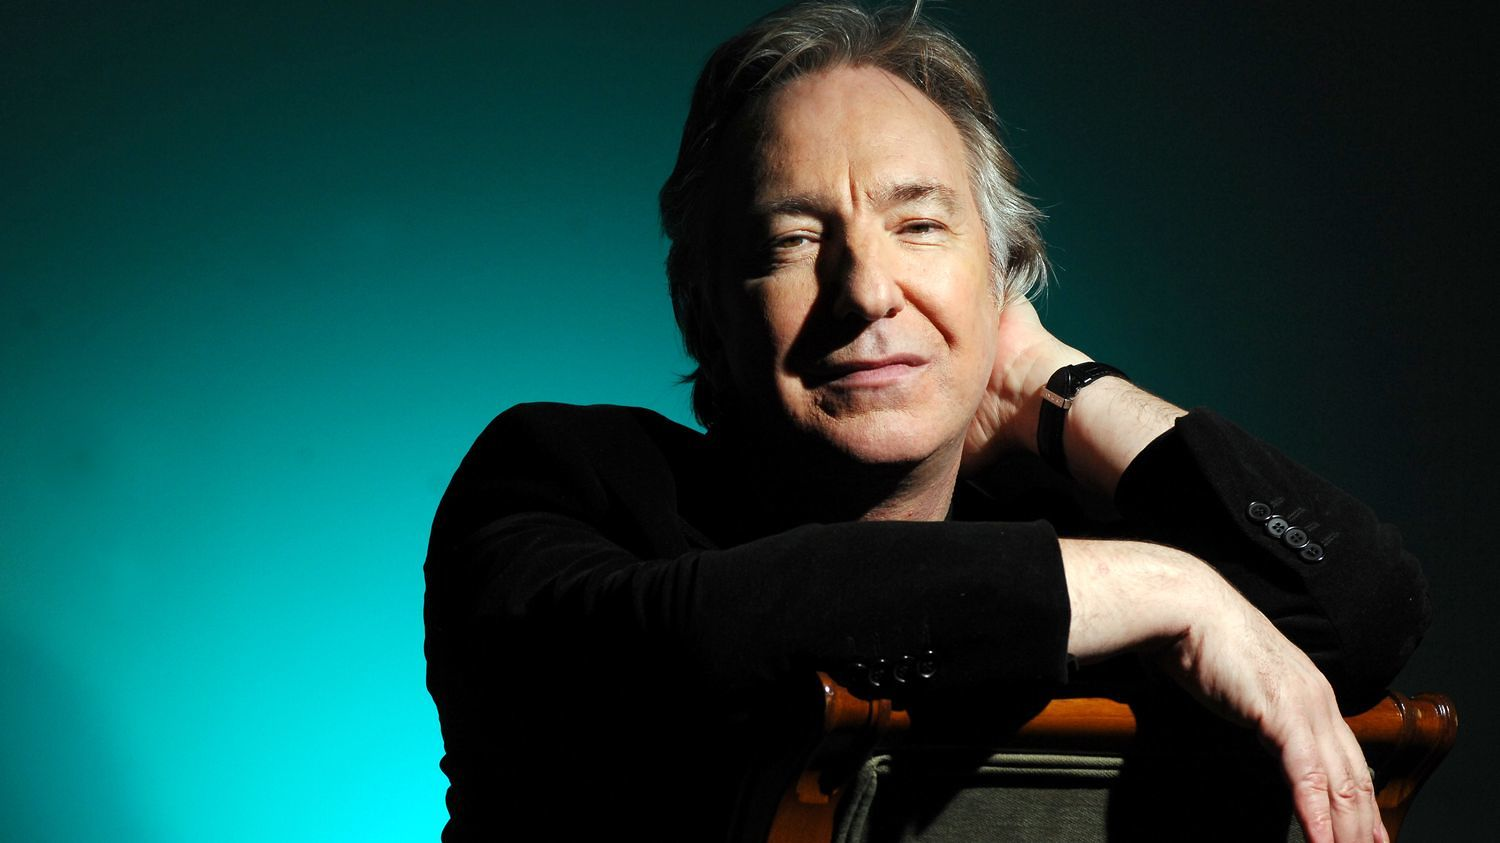 alan-rickman-s-heartfelt-tribute-to-his-harry-potter-co-stars-will-make-you-tear-up-792805